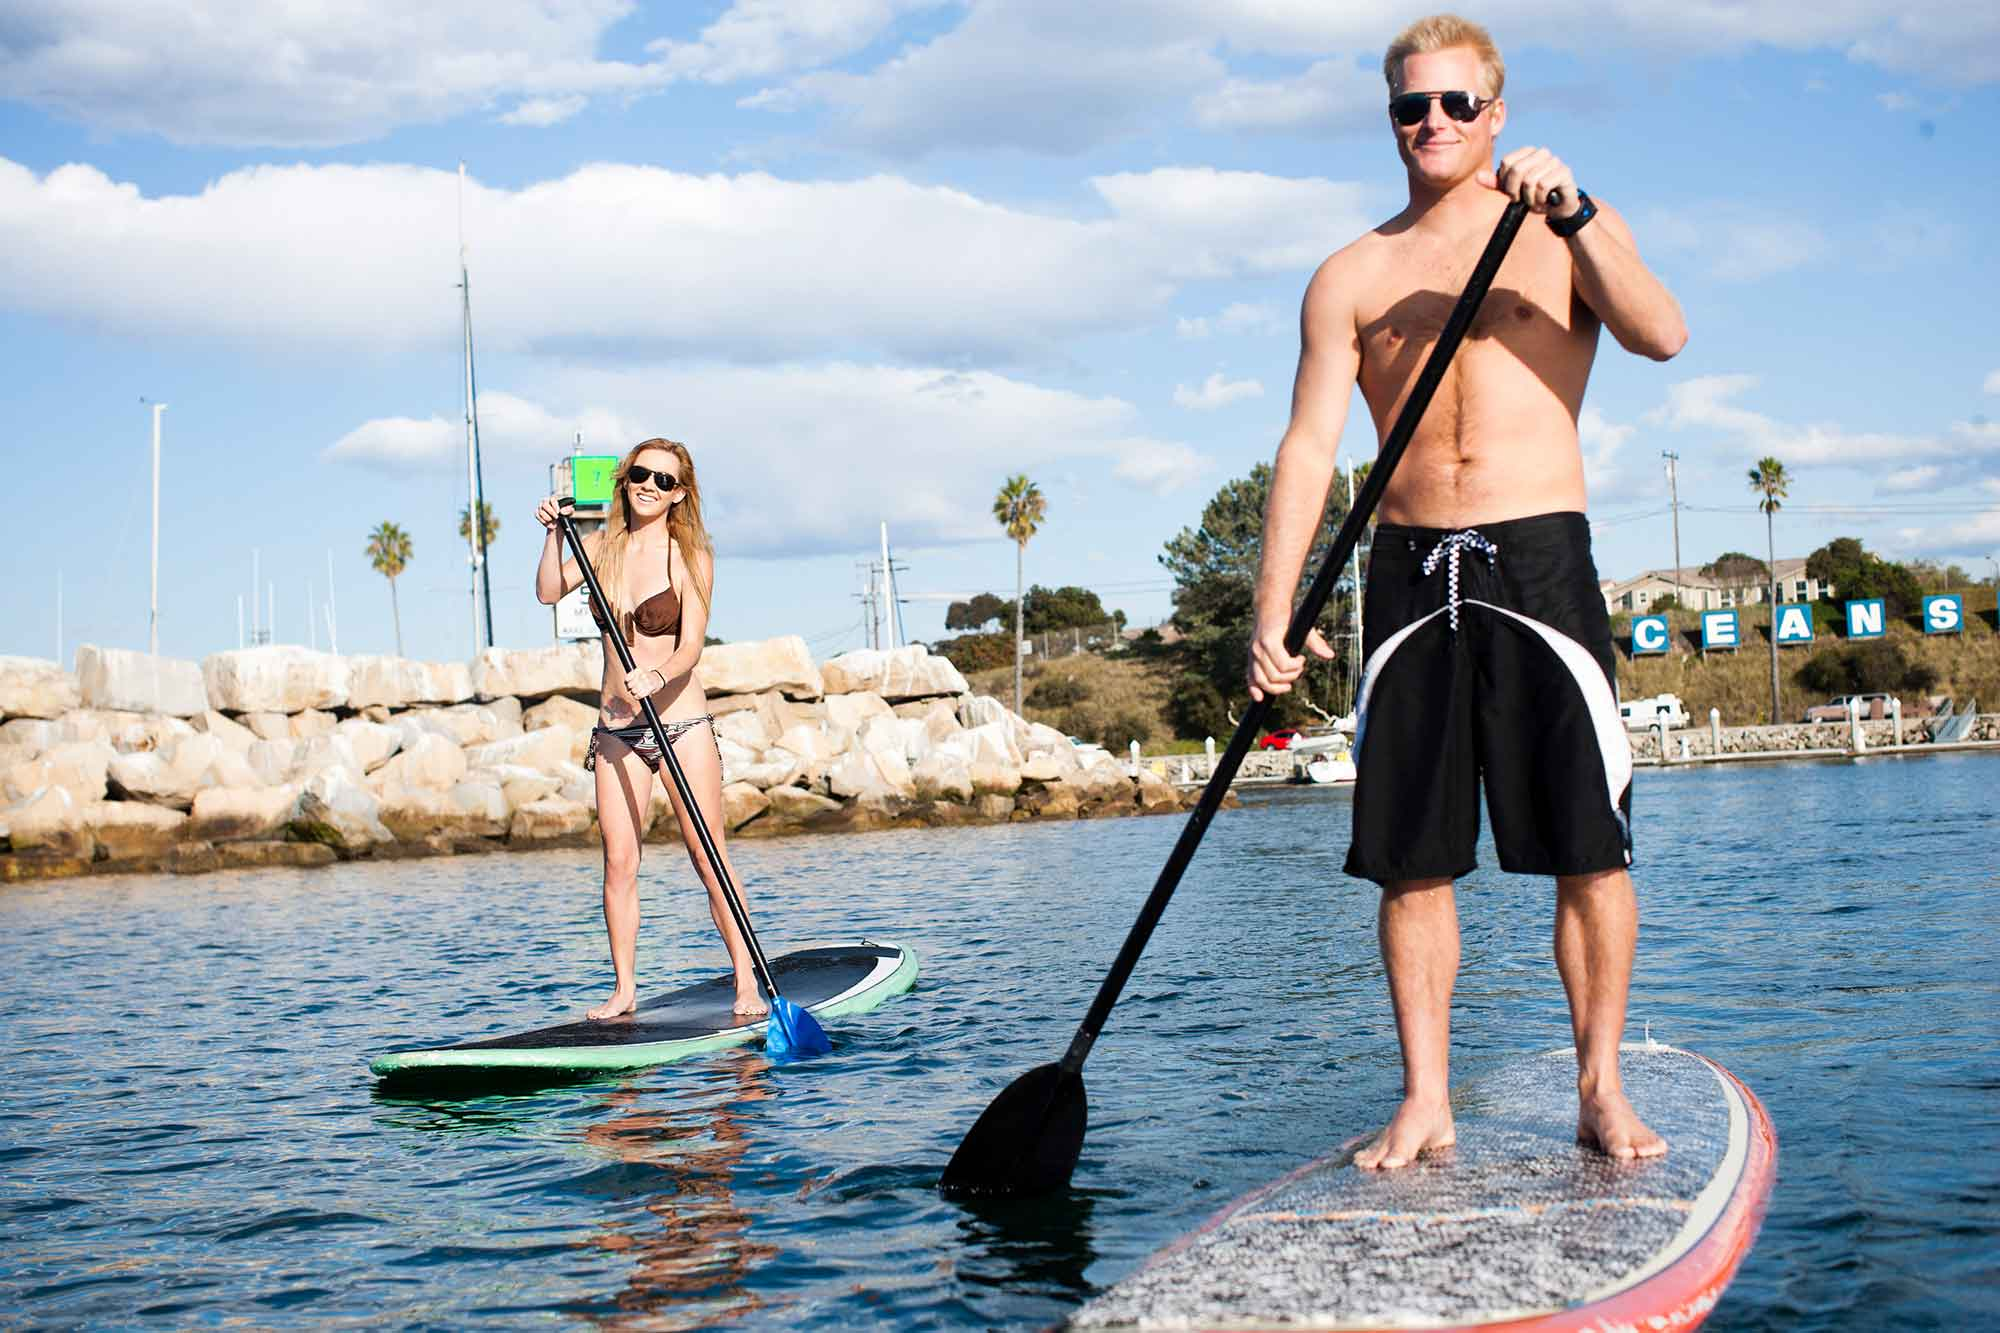 Stand Up Paddleboard at the Harbor